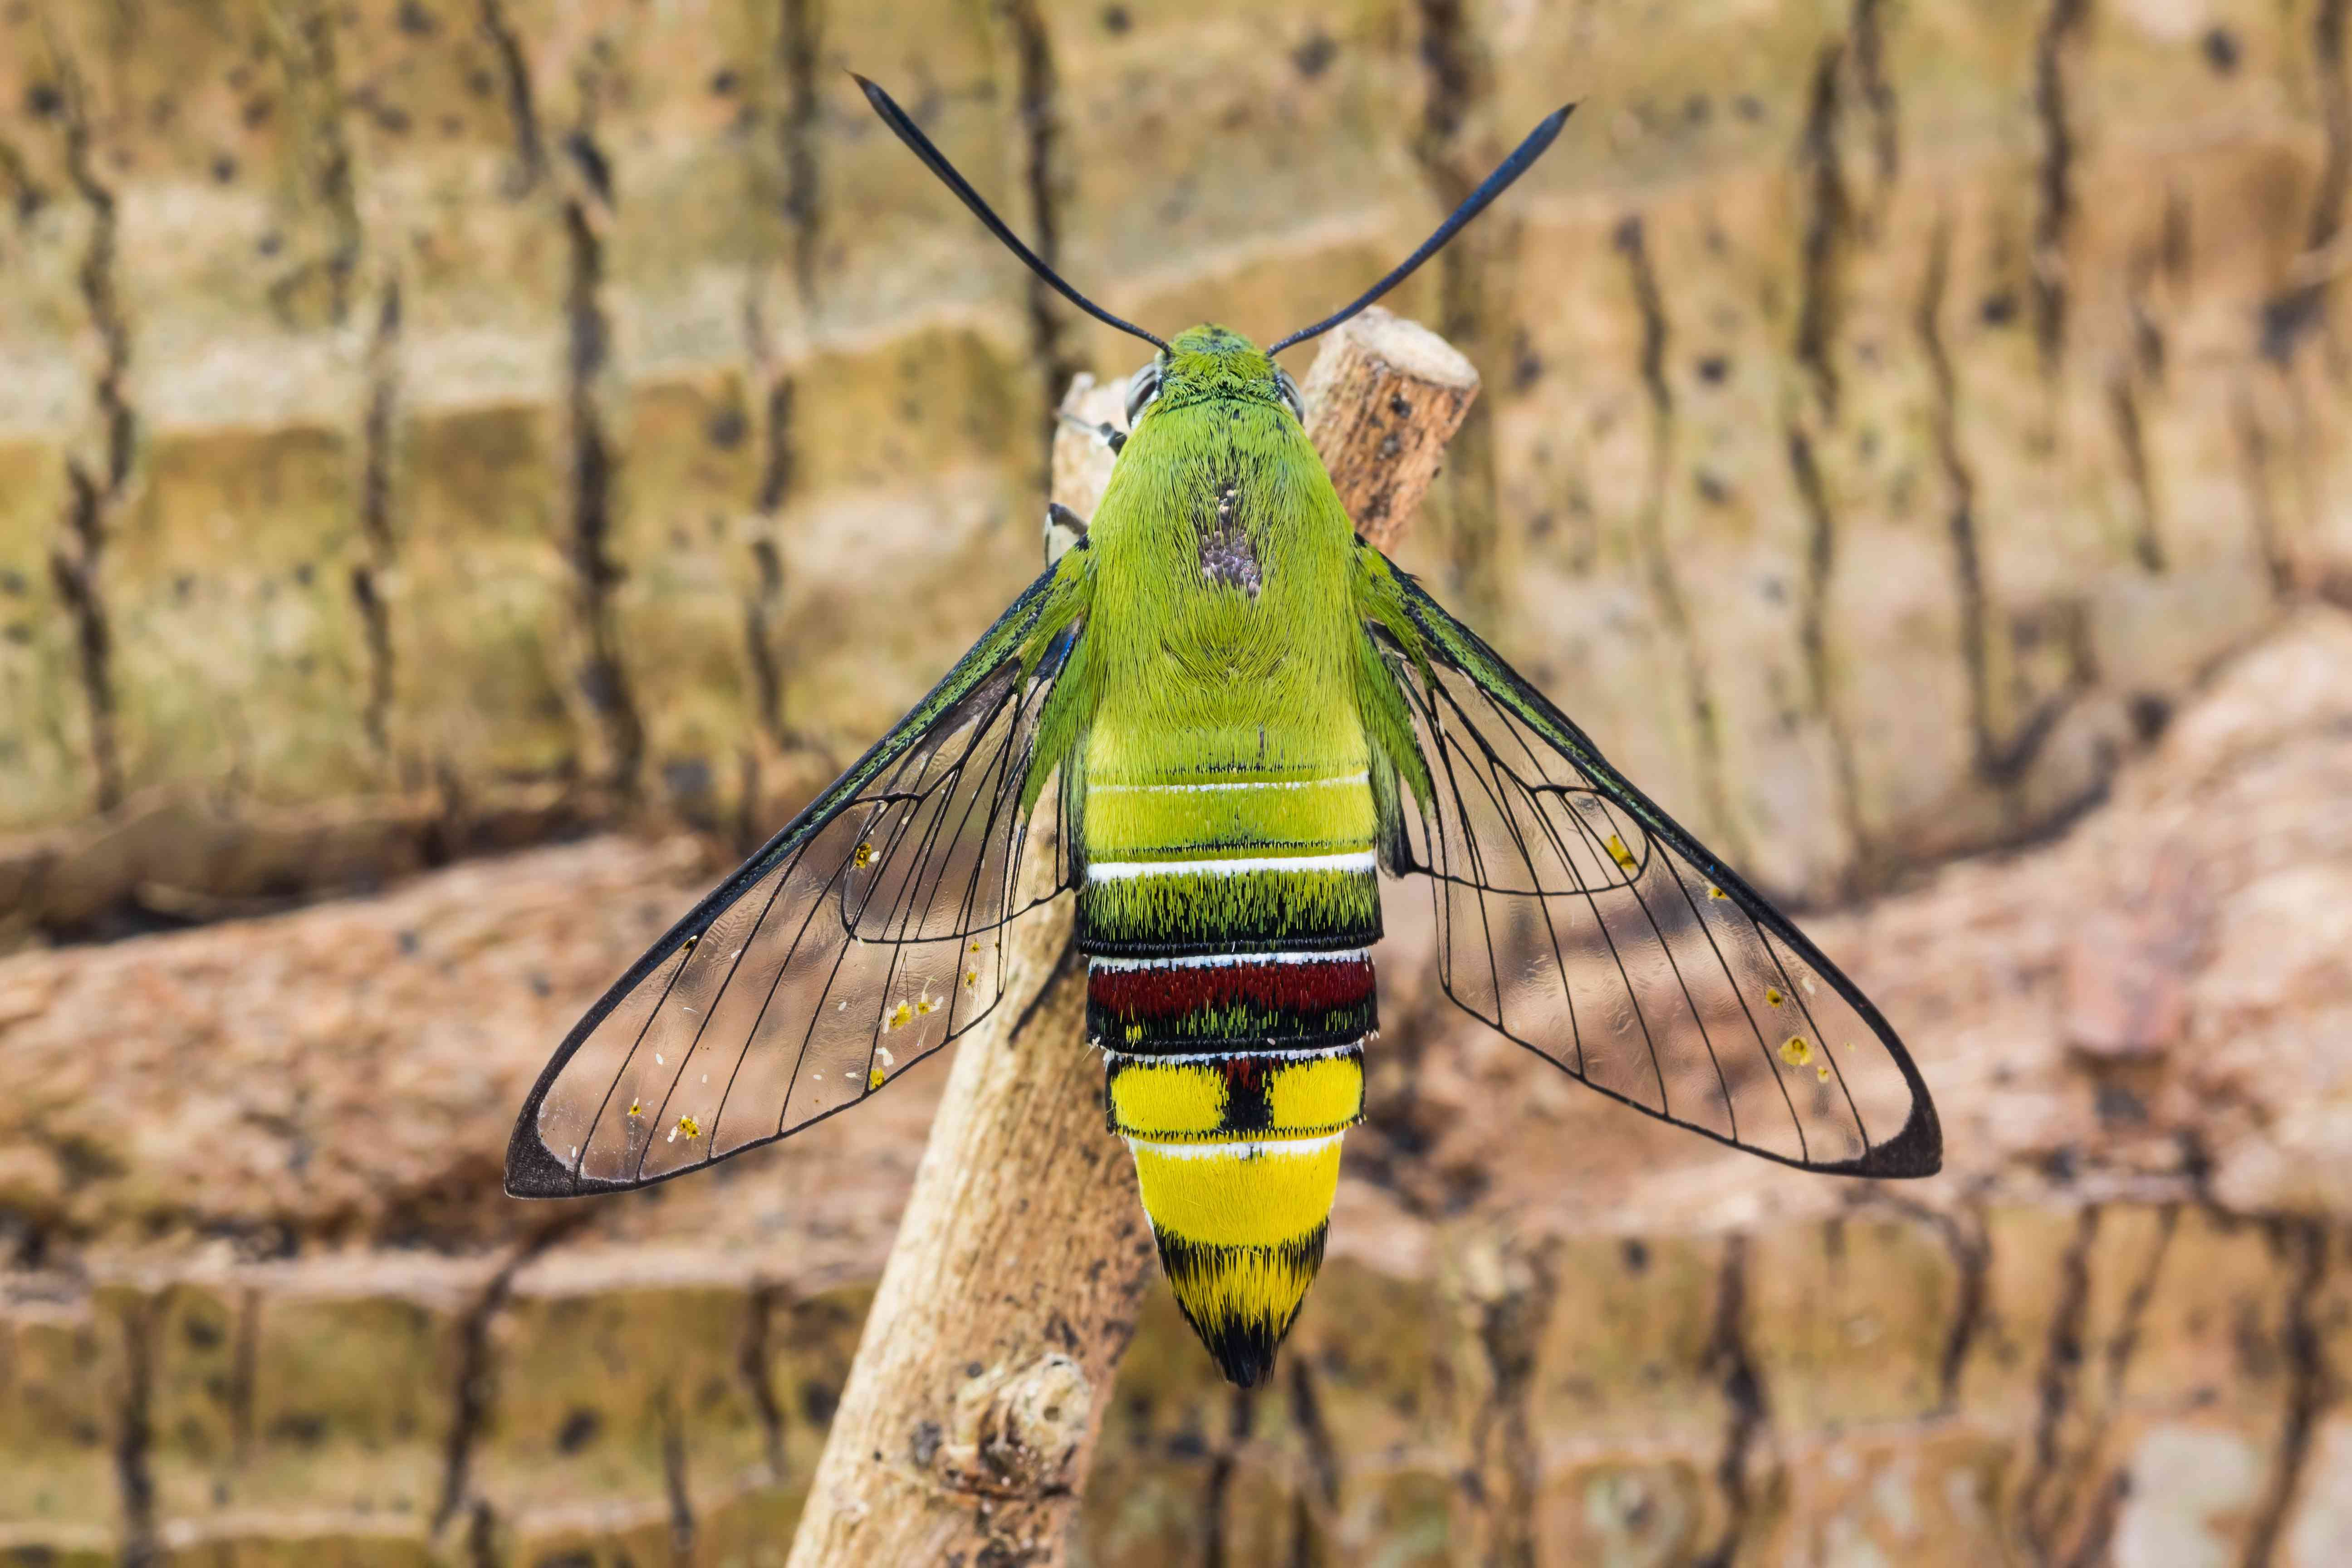 A green and yellow moth with transparent wings sits on a branch